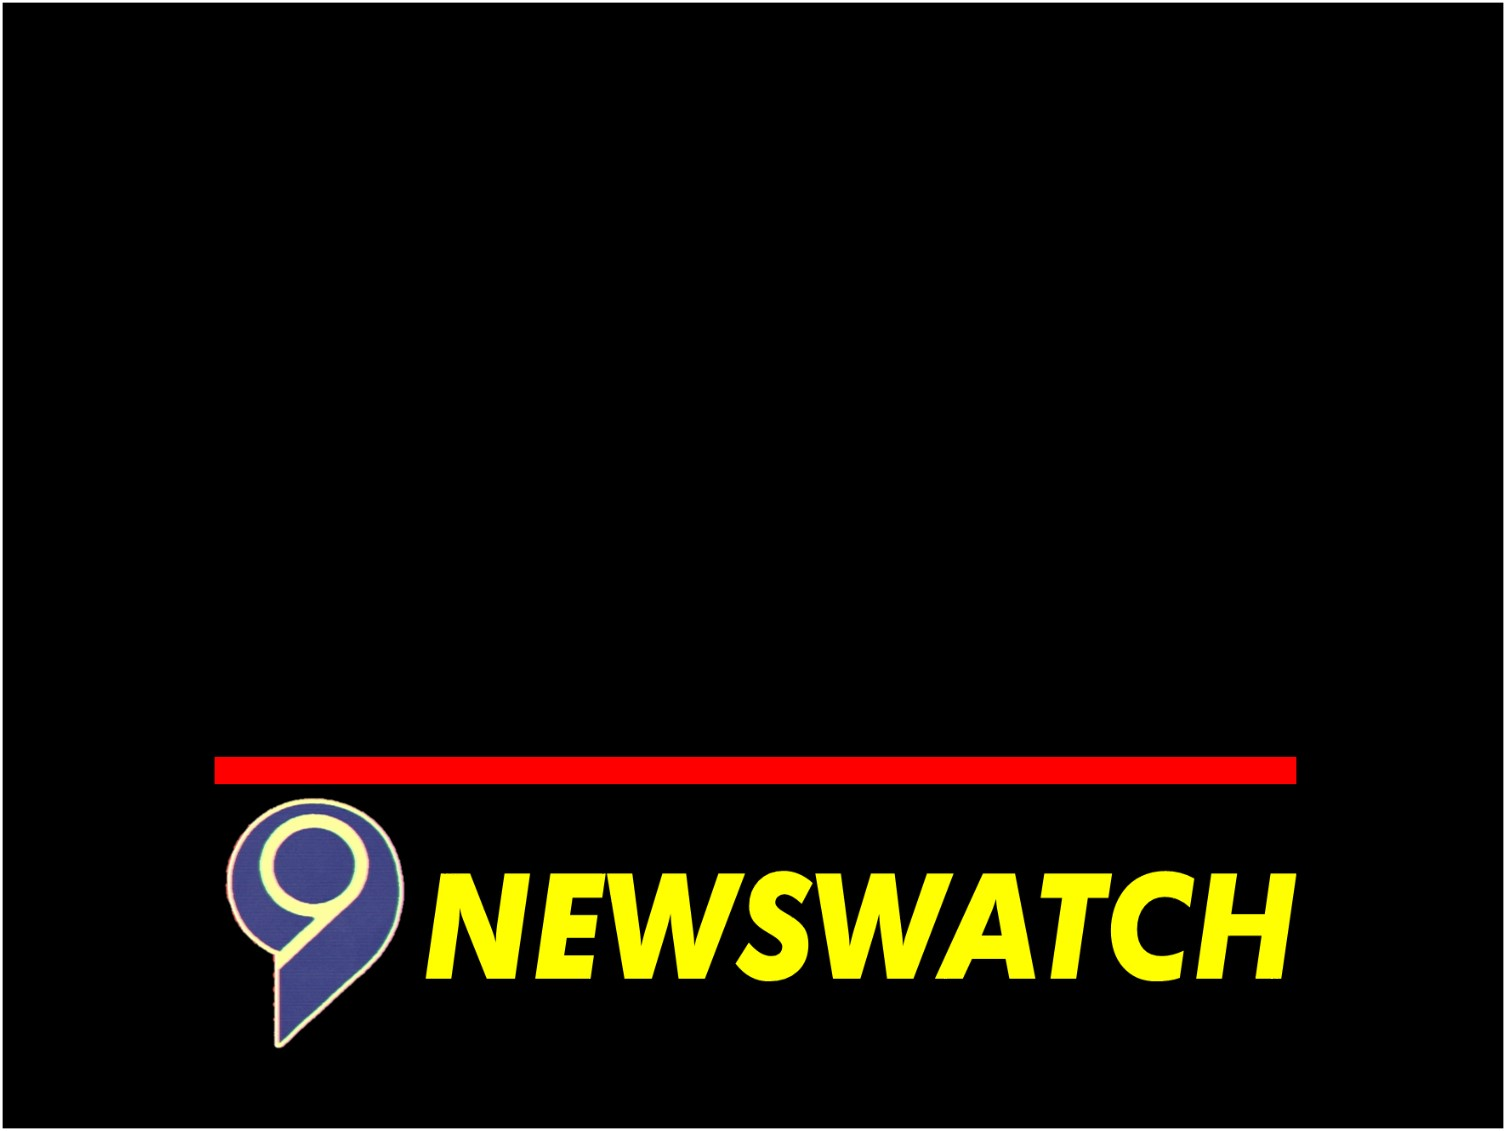 RPN NewsWatch/Other